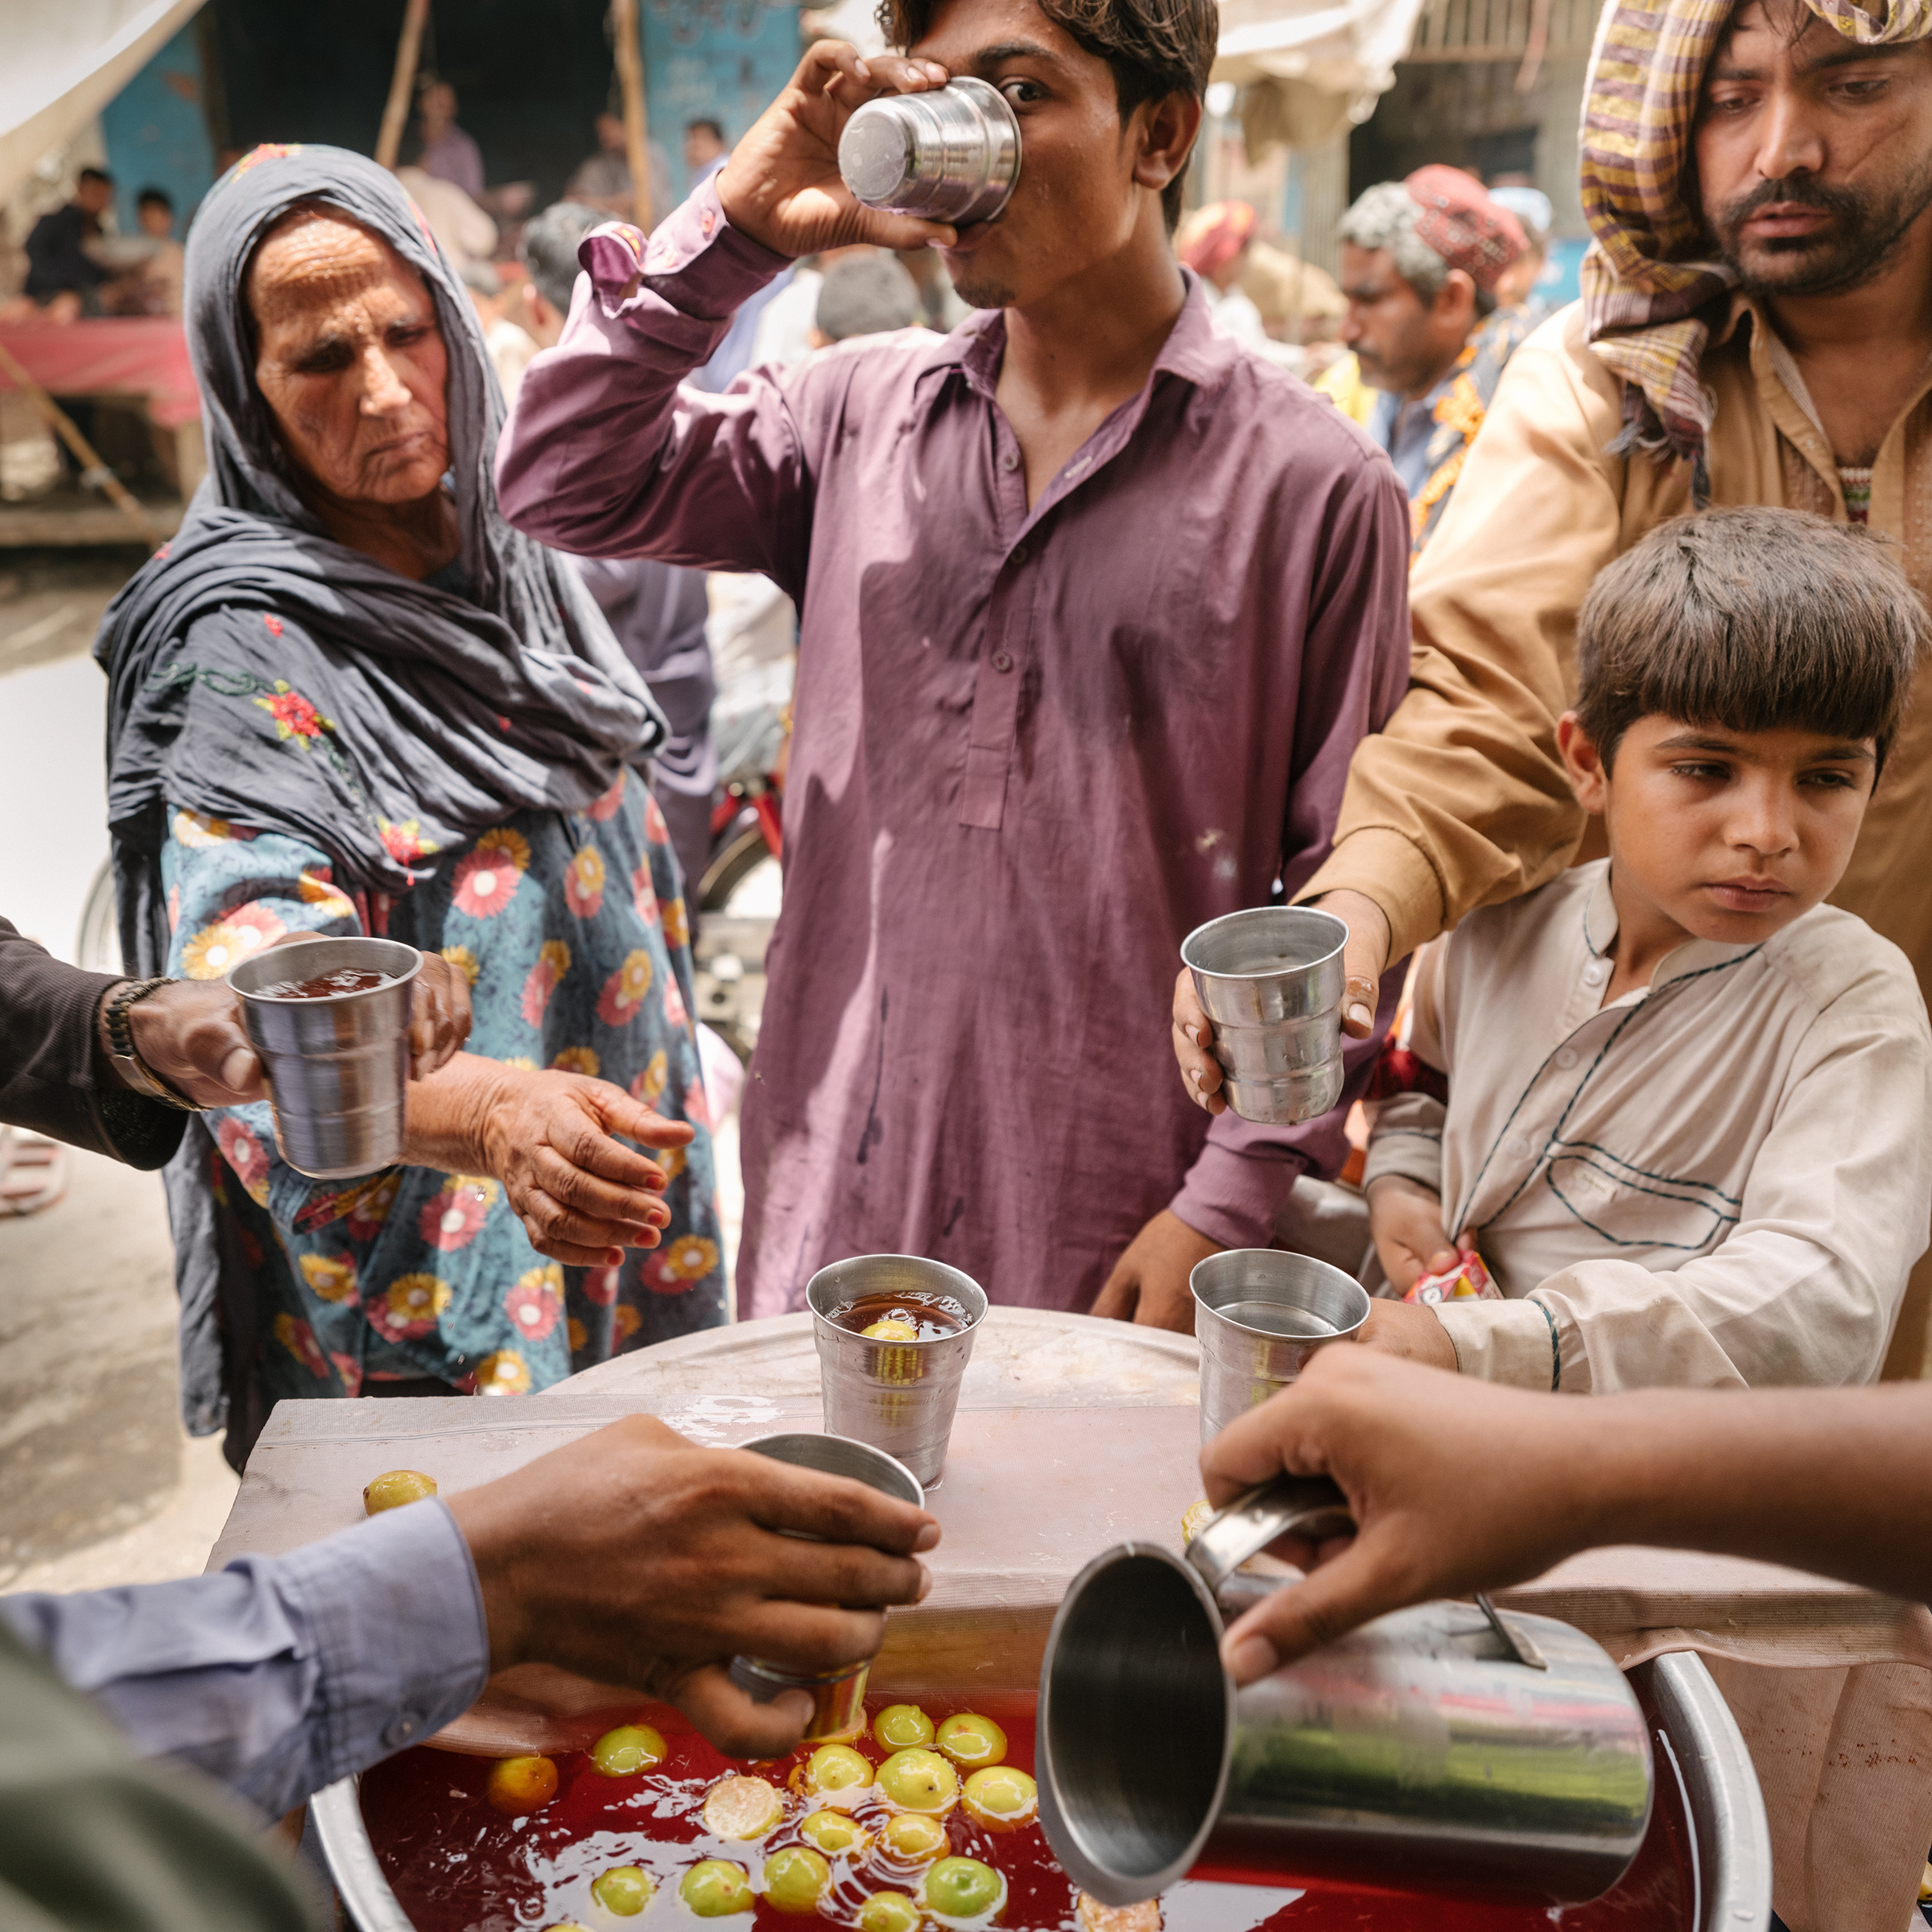 Police in Jacobabad serve punch to locals, to prevent heatstroke on the hottest days.